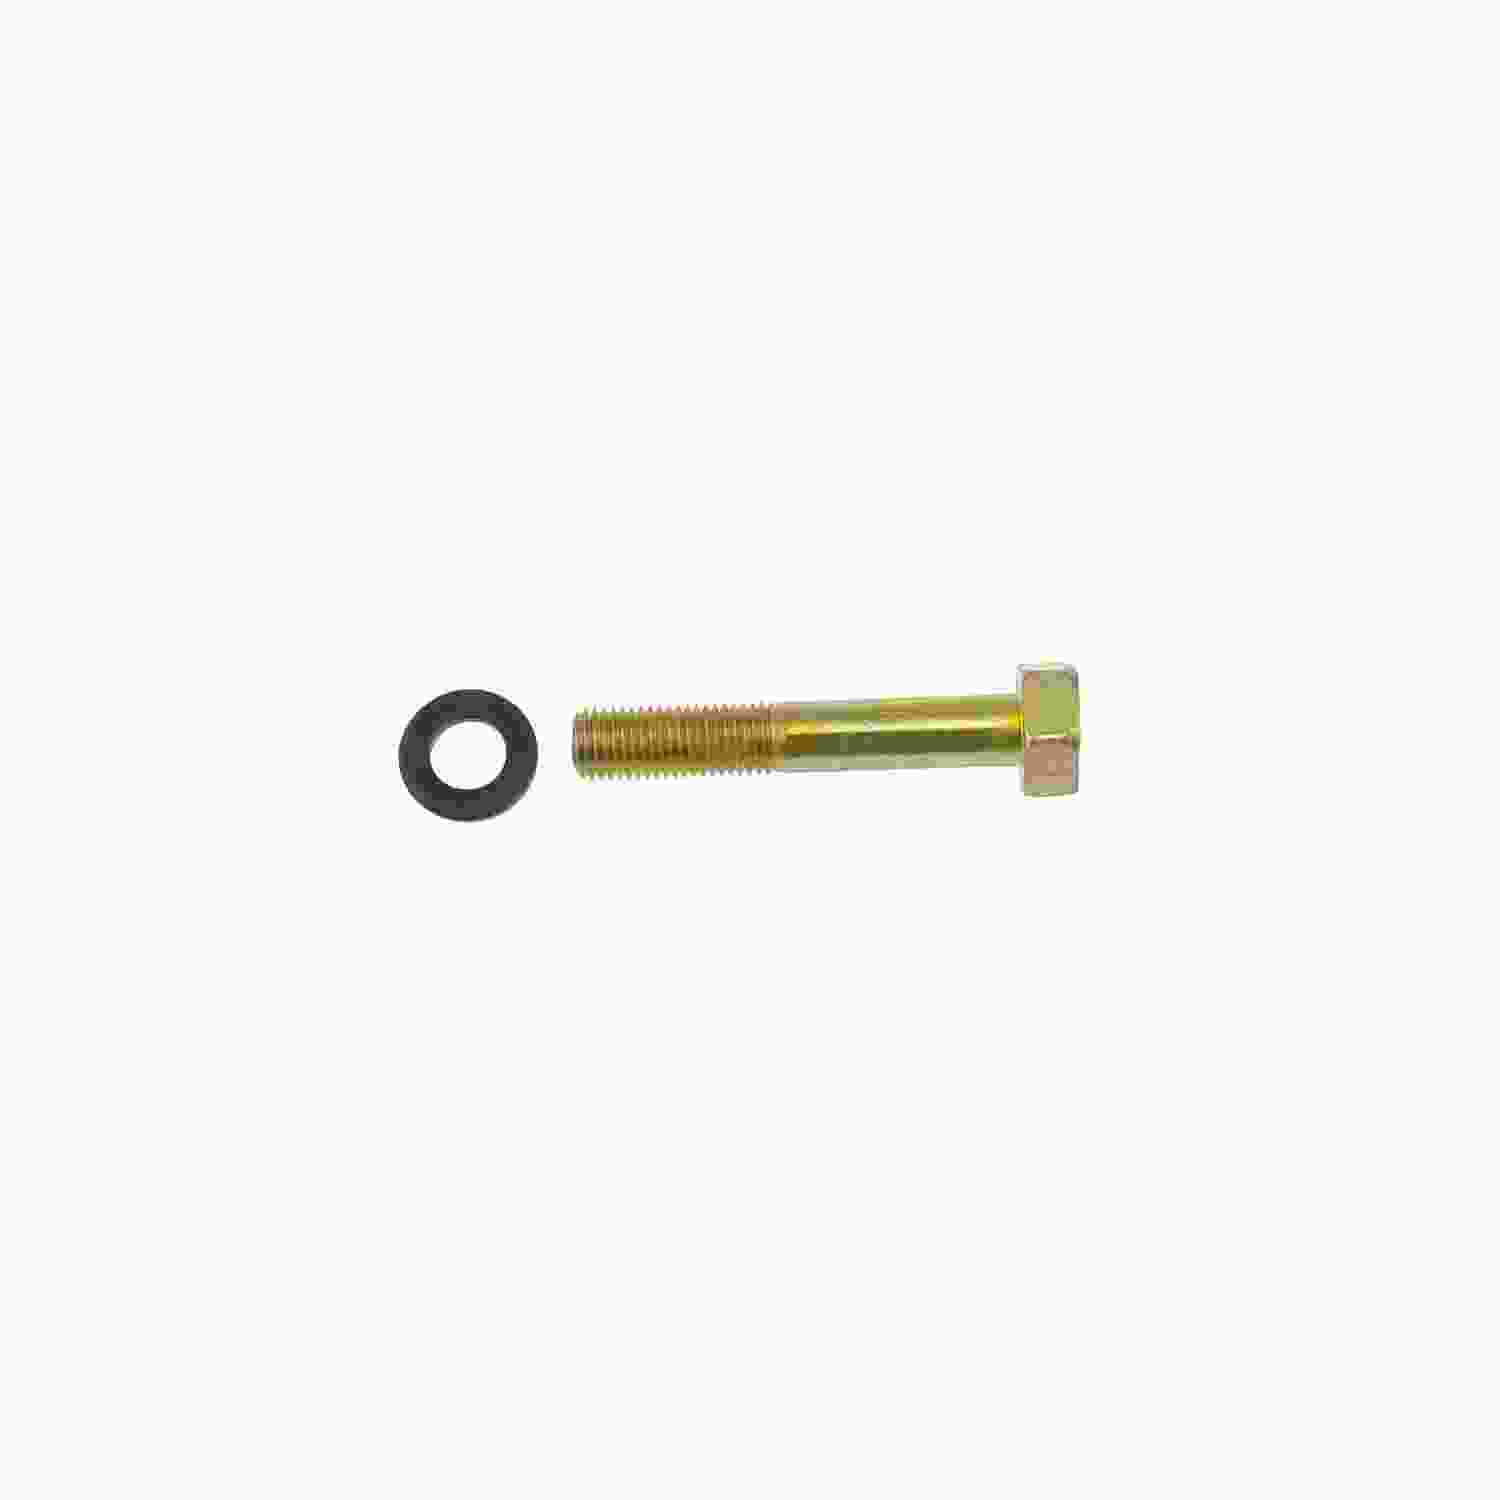 CARLSON QUALITY BRAKE PARTS - Disc Brake Caliper Bolt Kit - CRL 14098